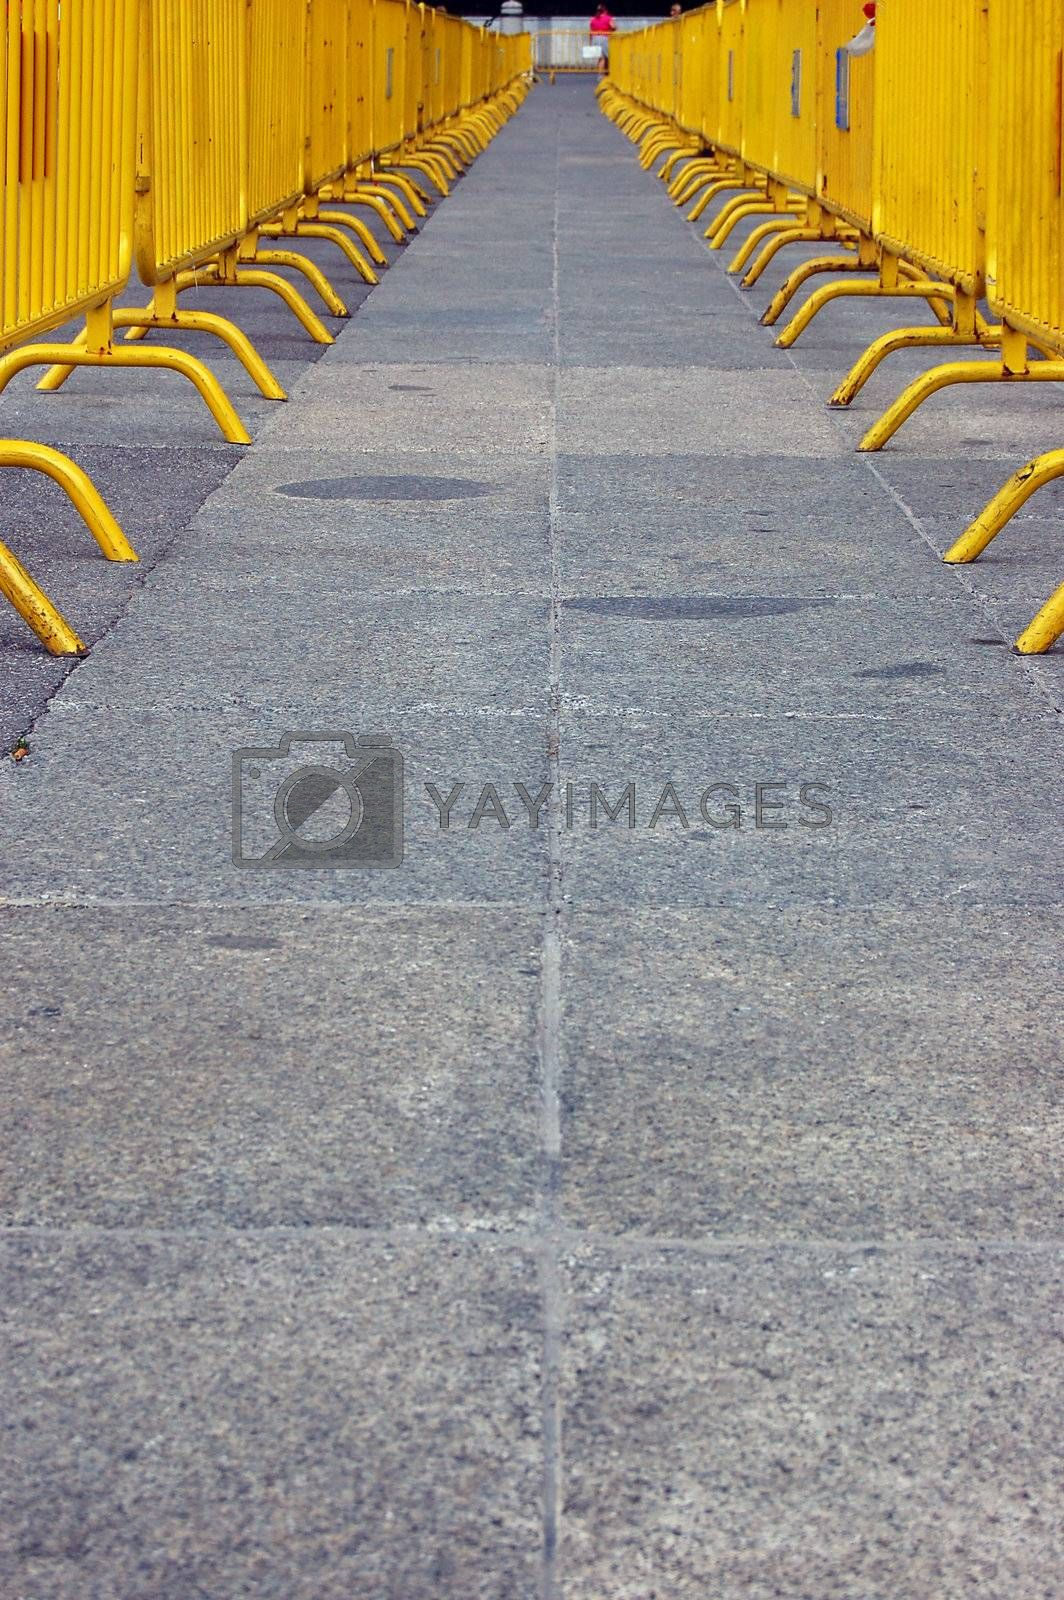 Yellow Barrier Path on the road - conceptual image